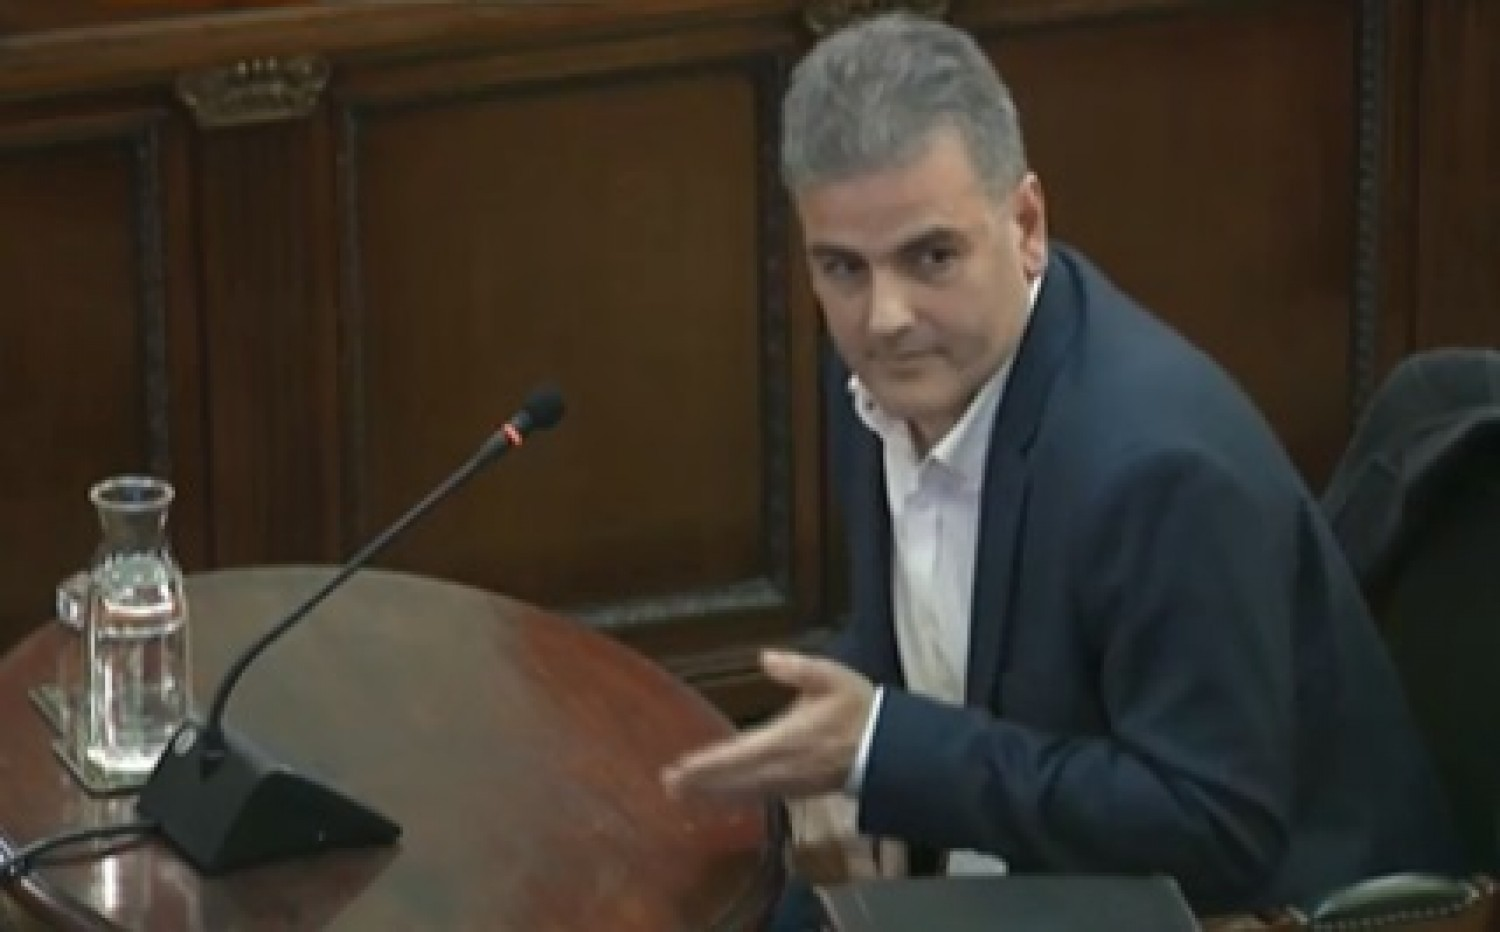 Albert Planas, former production manager of private mail company Unipost, testifies